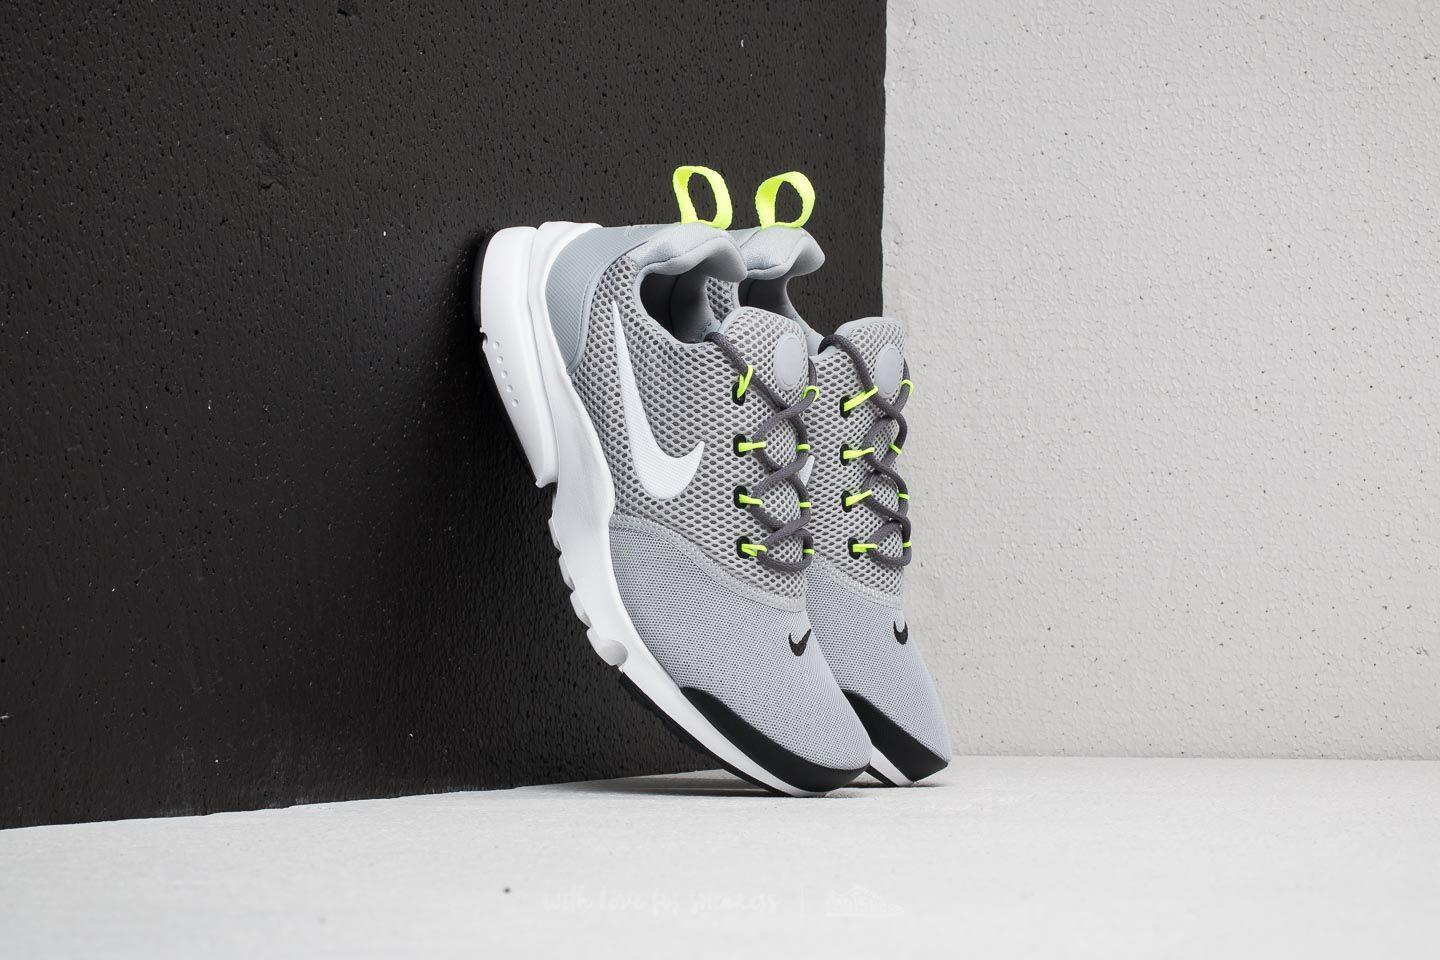 4369204f907f Lyst - Nike Presto Fly (gs) Wolf Grey  White-black-volt in Black for Men